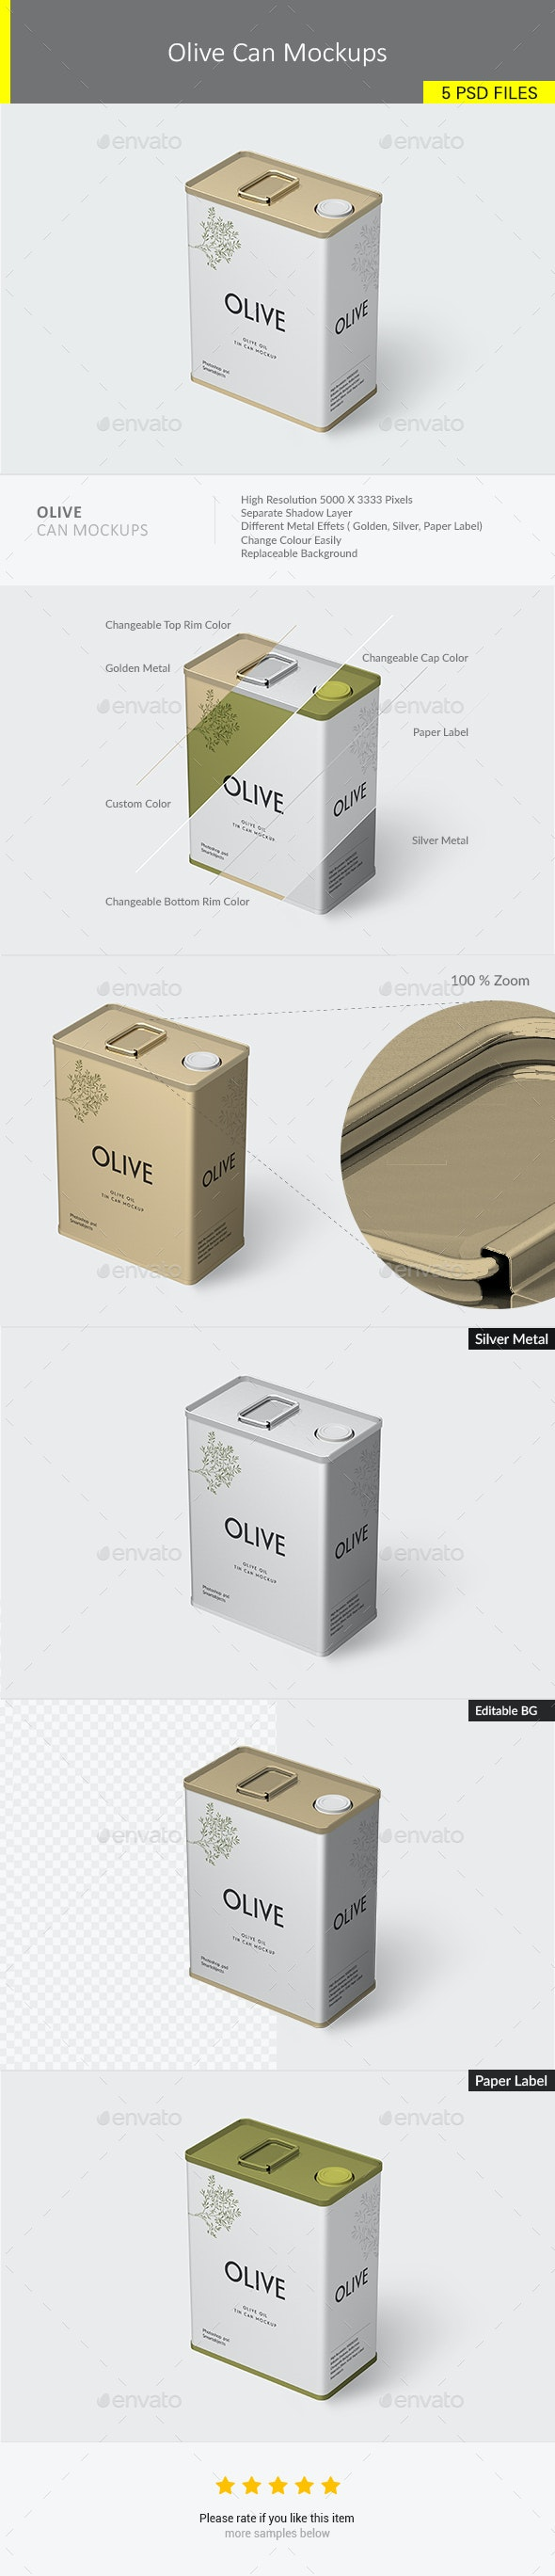 Olive Can Mockups - Graphics